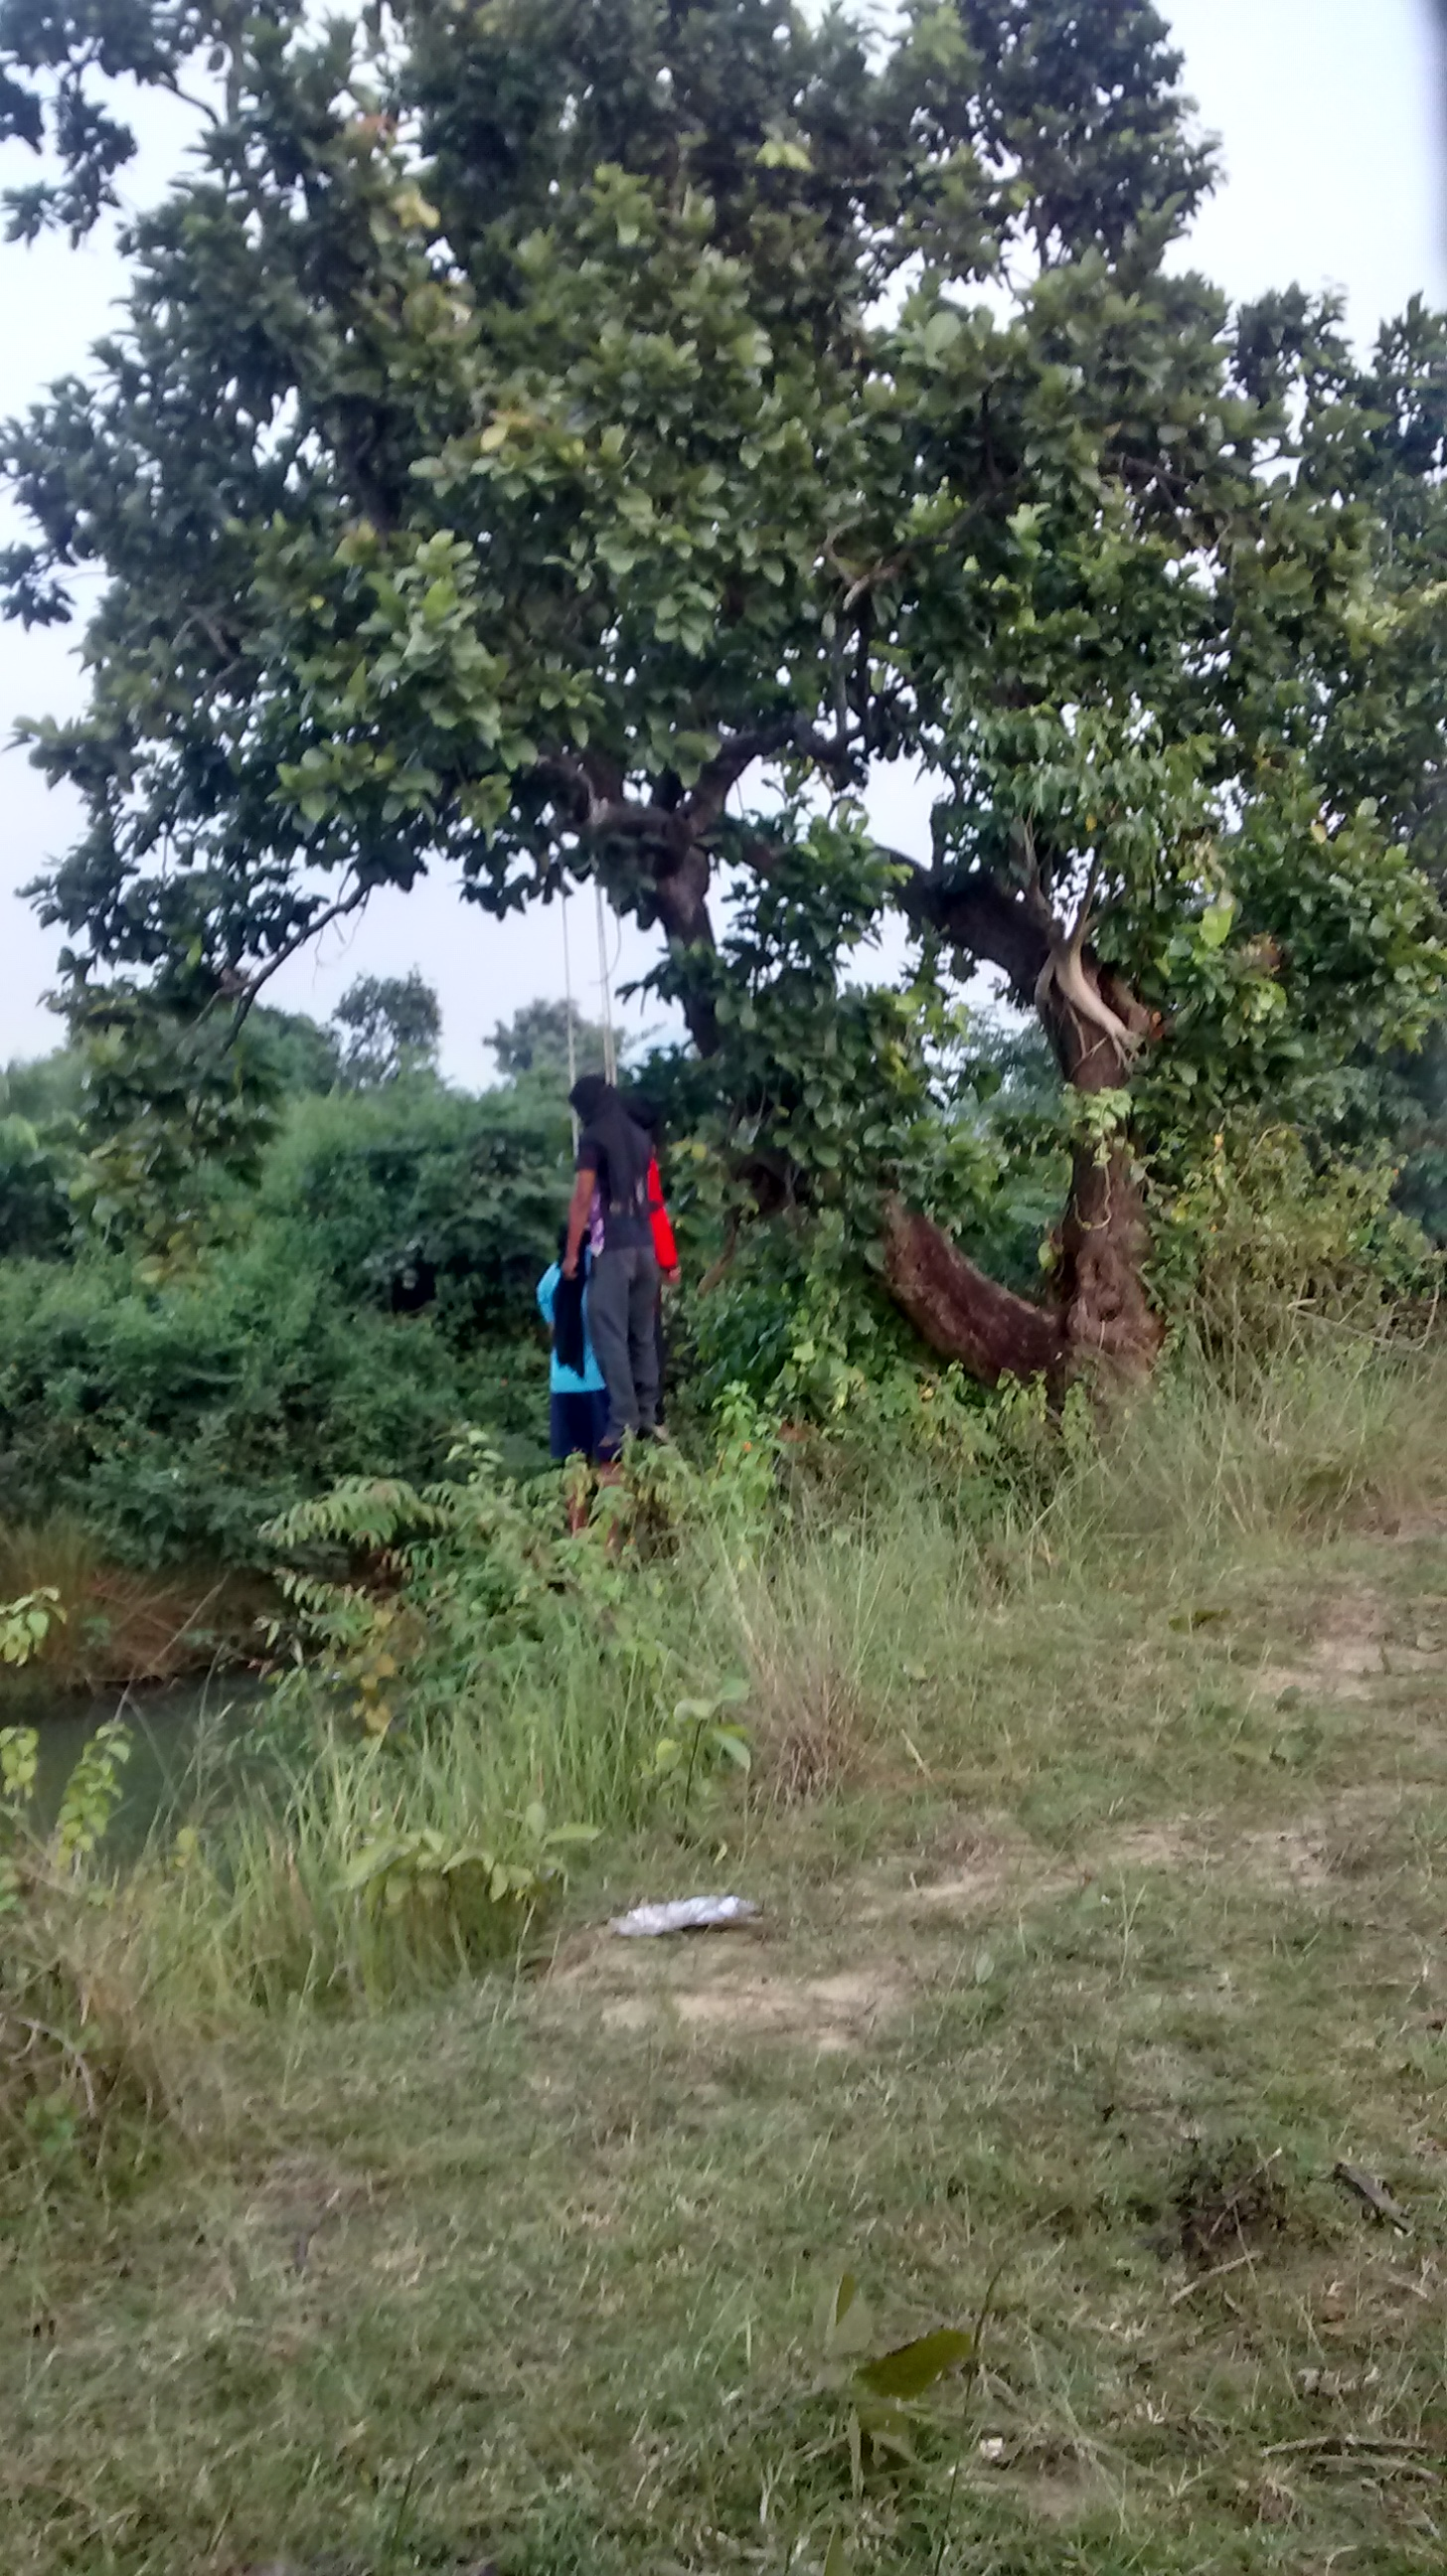 THREE PERSONS HANG THEMSELVES IN THE BRANCH OF A TREE